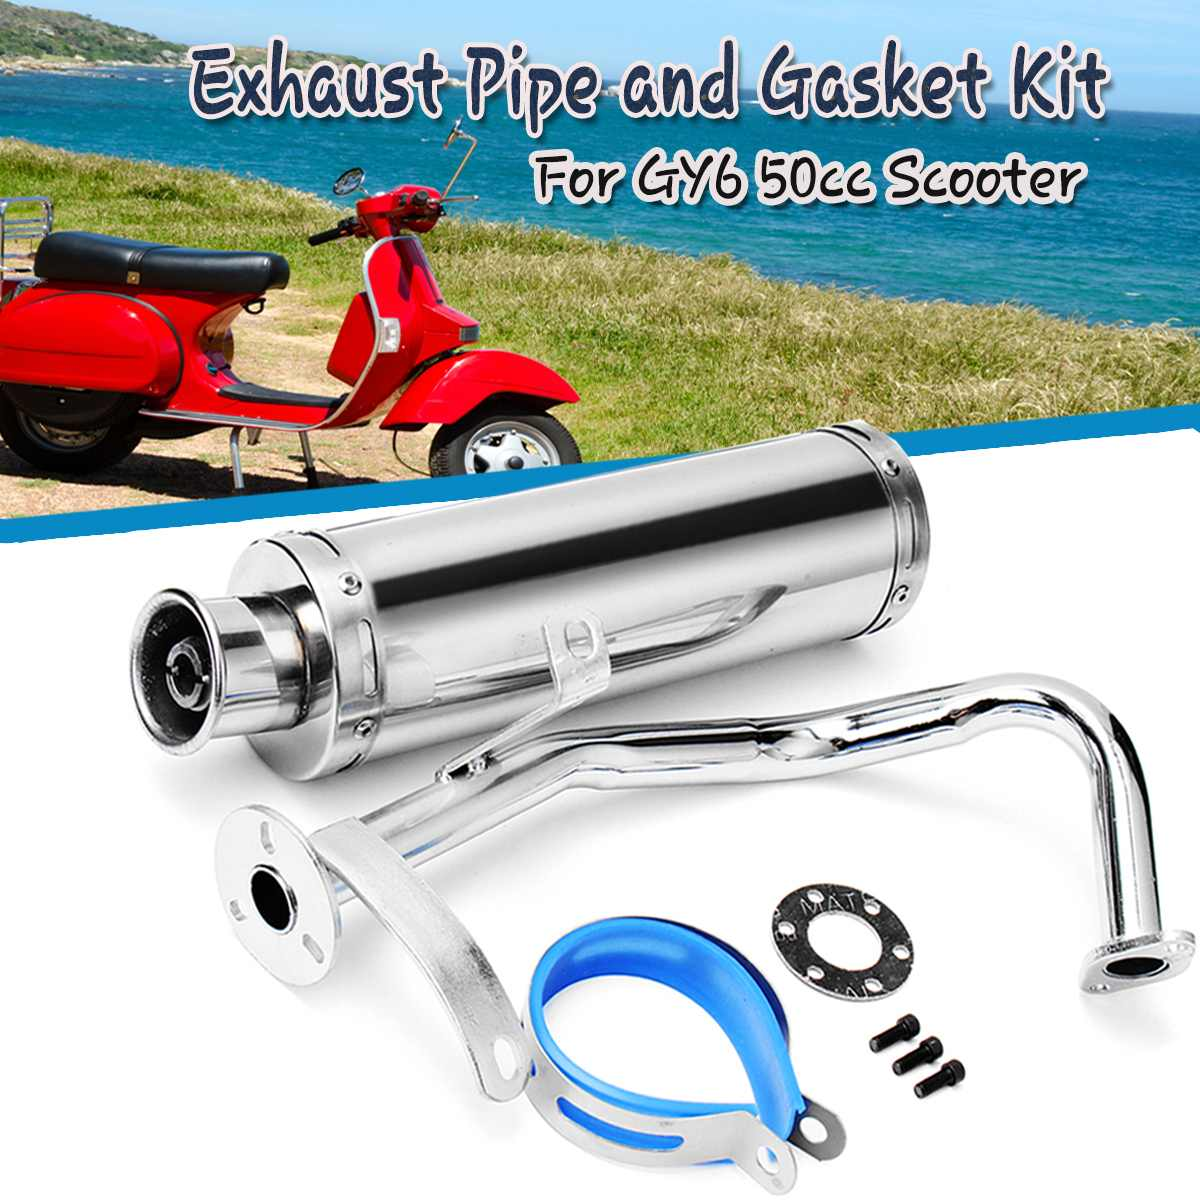 Stainless Steel Exhaust Muffler Pipe System Gasket Kit Fit For Scooter GY6 50cc GY6 QM139